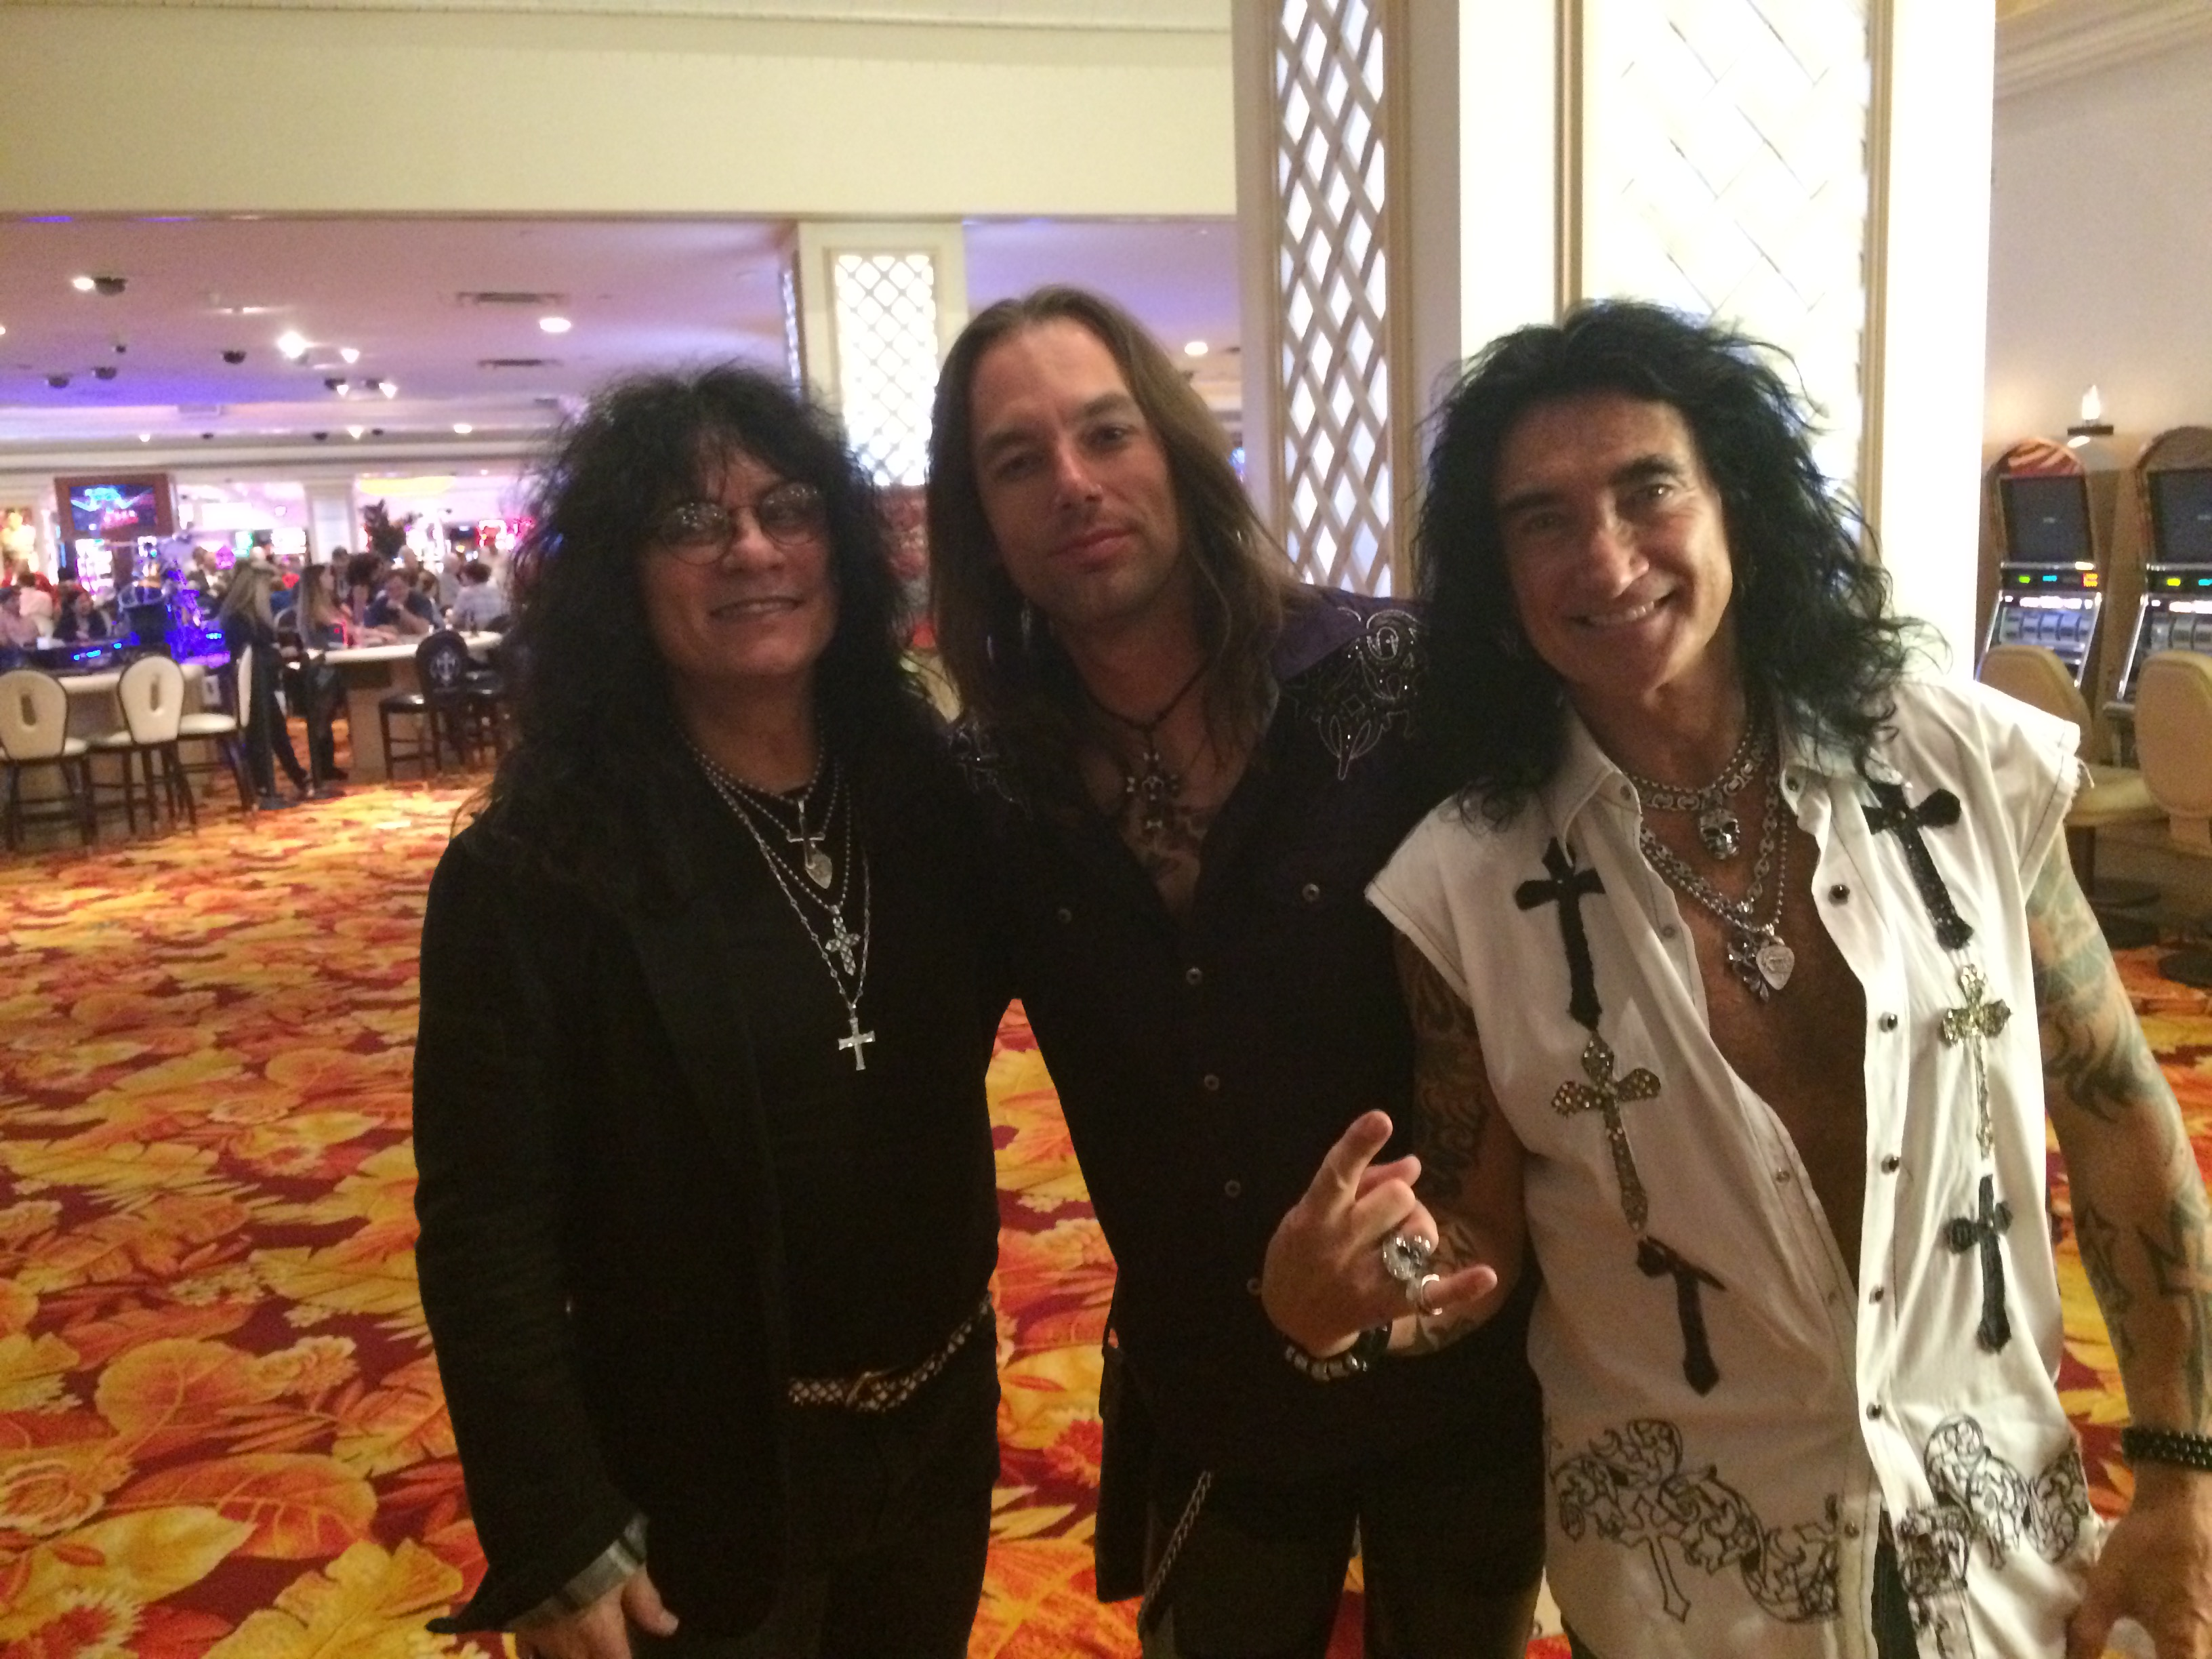 With Paul Shortino and Robin McAuley